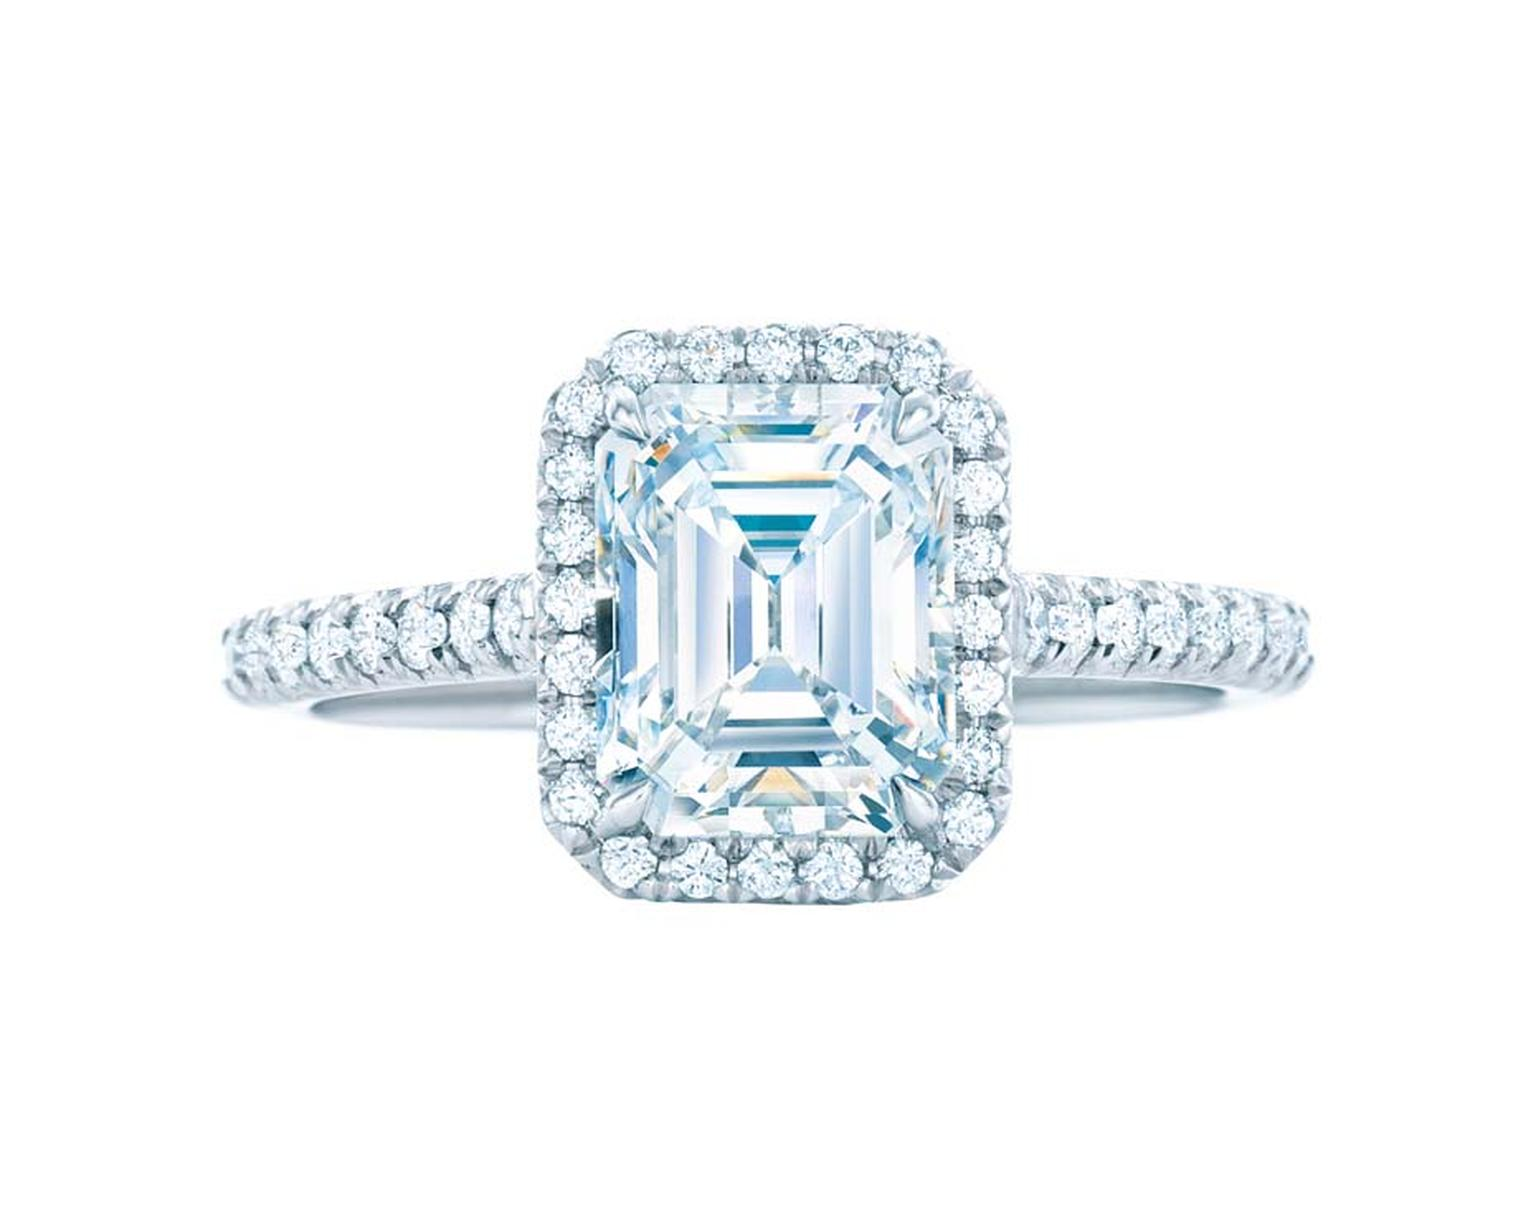 Tiffany Soleste emerald-cut diamond engagement ring featuring bead-set diamonds surrounding the central diamond and encircling the band